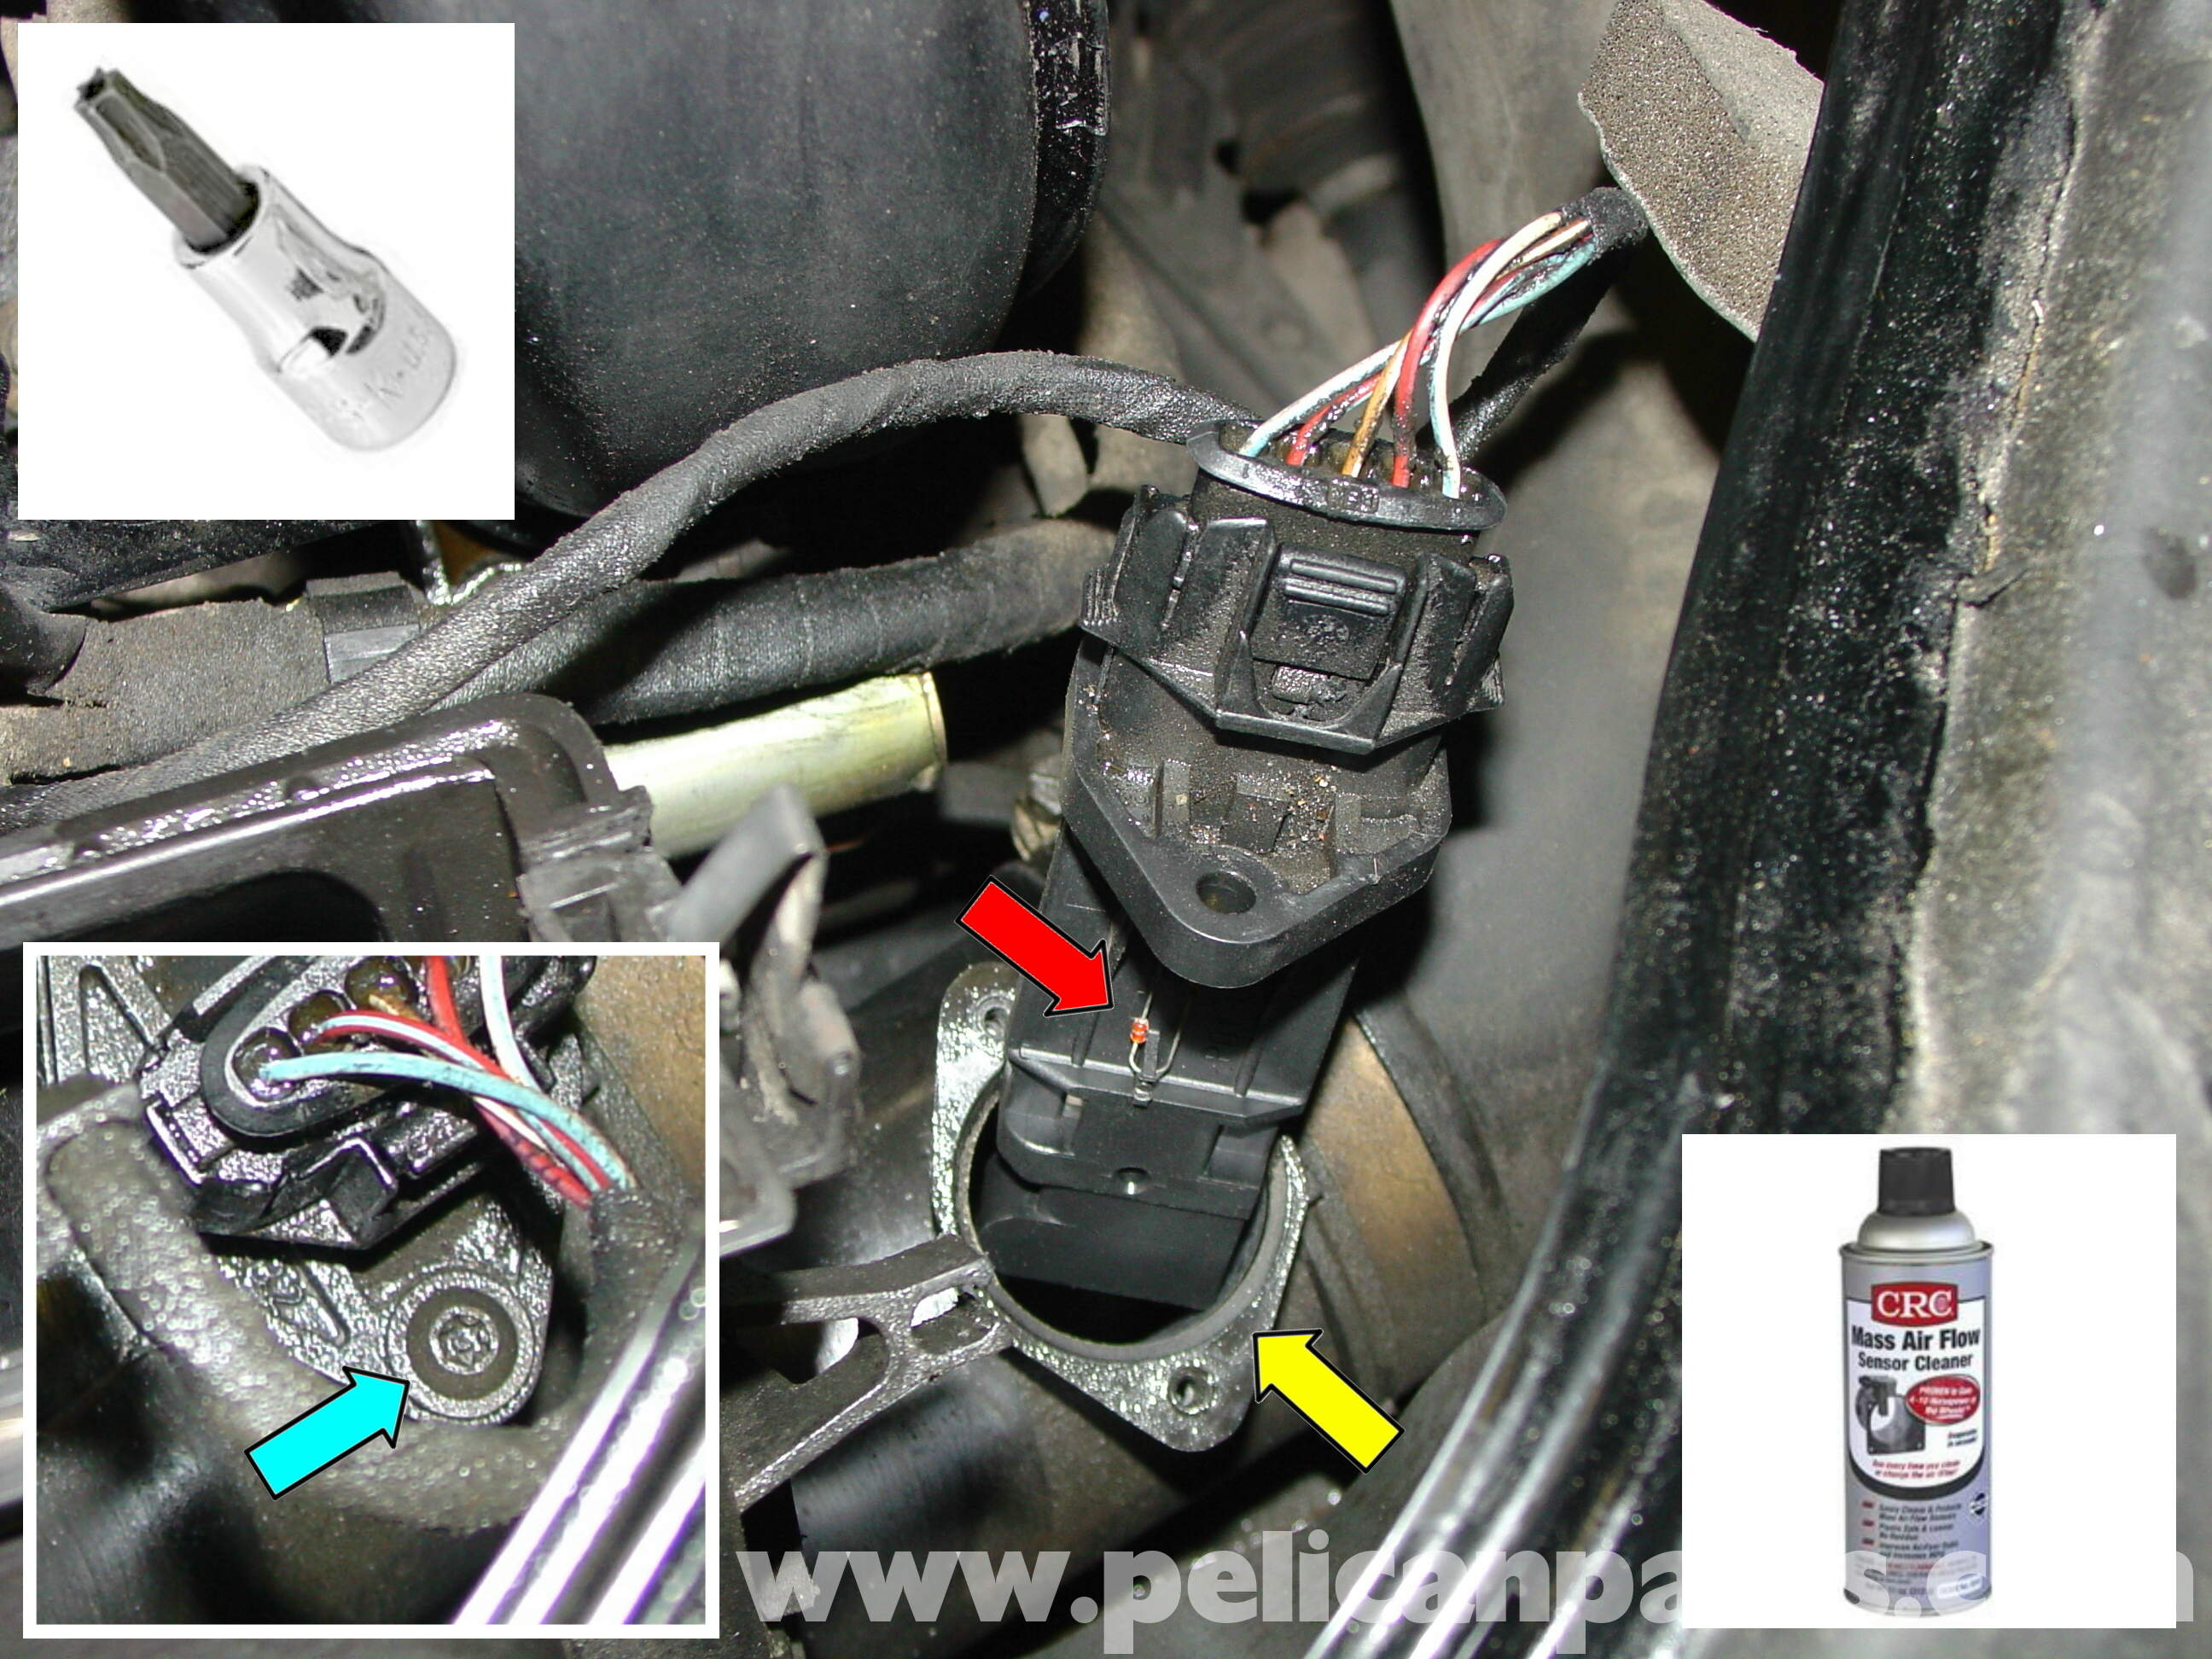 2005 Chevy Equinox Body Control Module Location besides 2017 Toyota Sienna in addition 2008 Nissan Altima Mass Air Flow Sensor Location furthermore GMC Syclone Typhoon together with Ford F 250 Parking Brake Diagram. on s10 abs wiring diagram